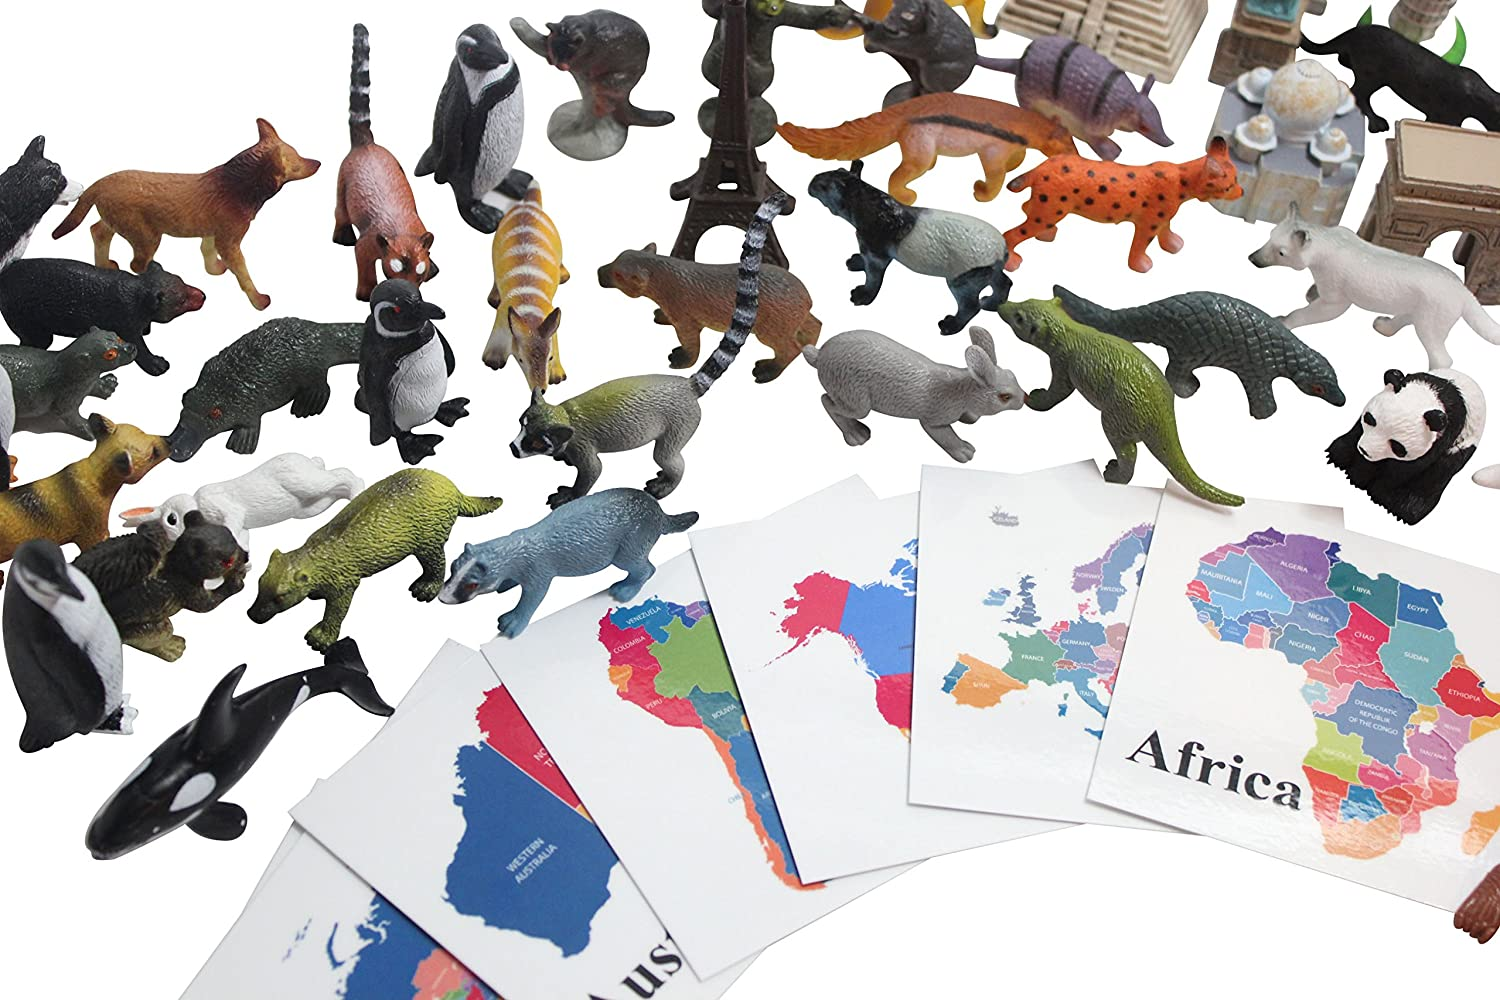 Continent critters montessori continent box materials animal continent critters montessori continent box materials animal replicas world geography work montessori geography curriculum map materials continent gumiabroncs Images